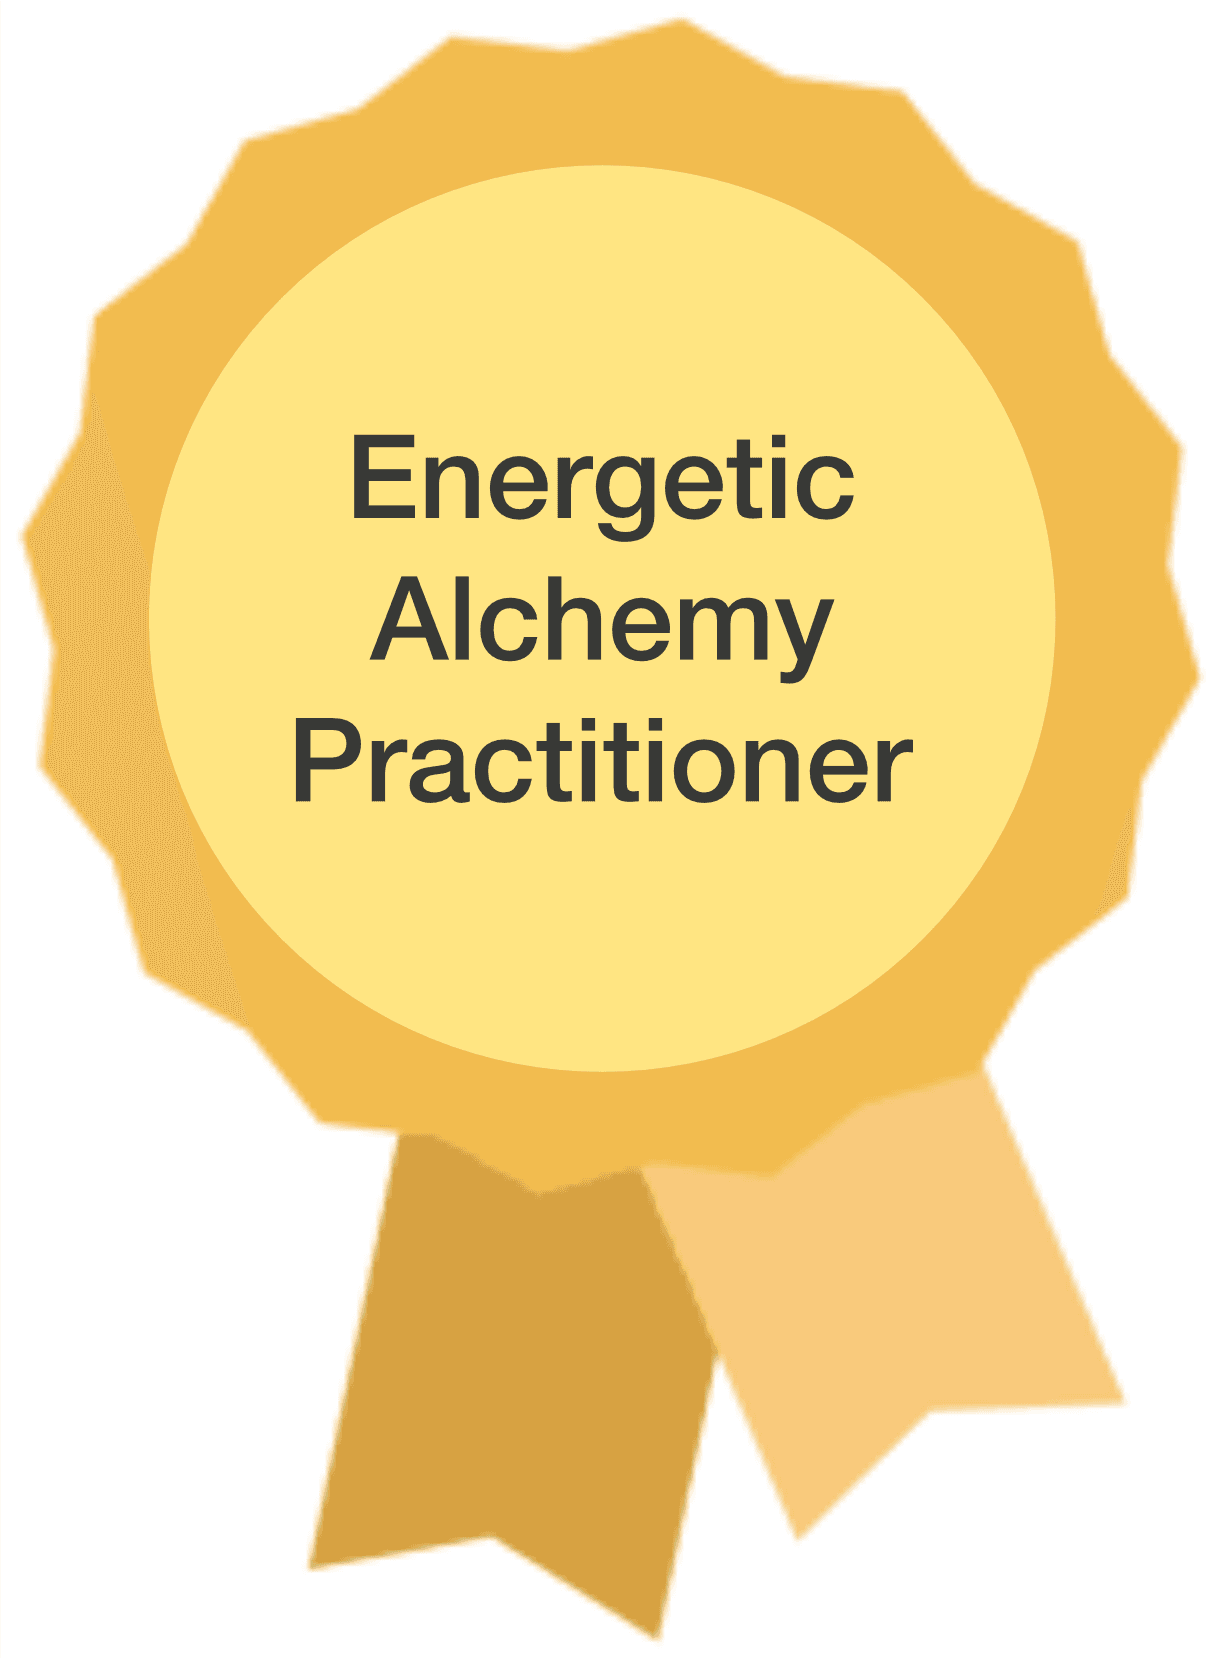 Energetic-Alchemy-Practitioner